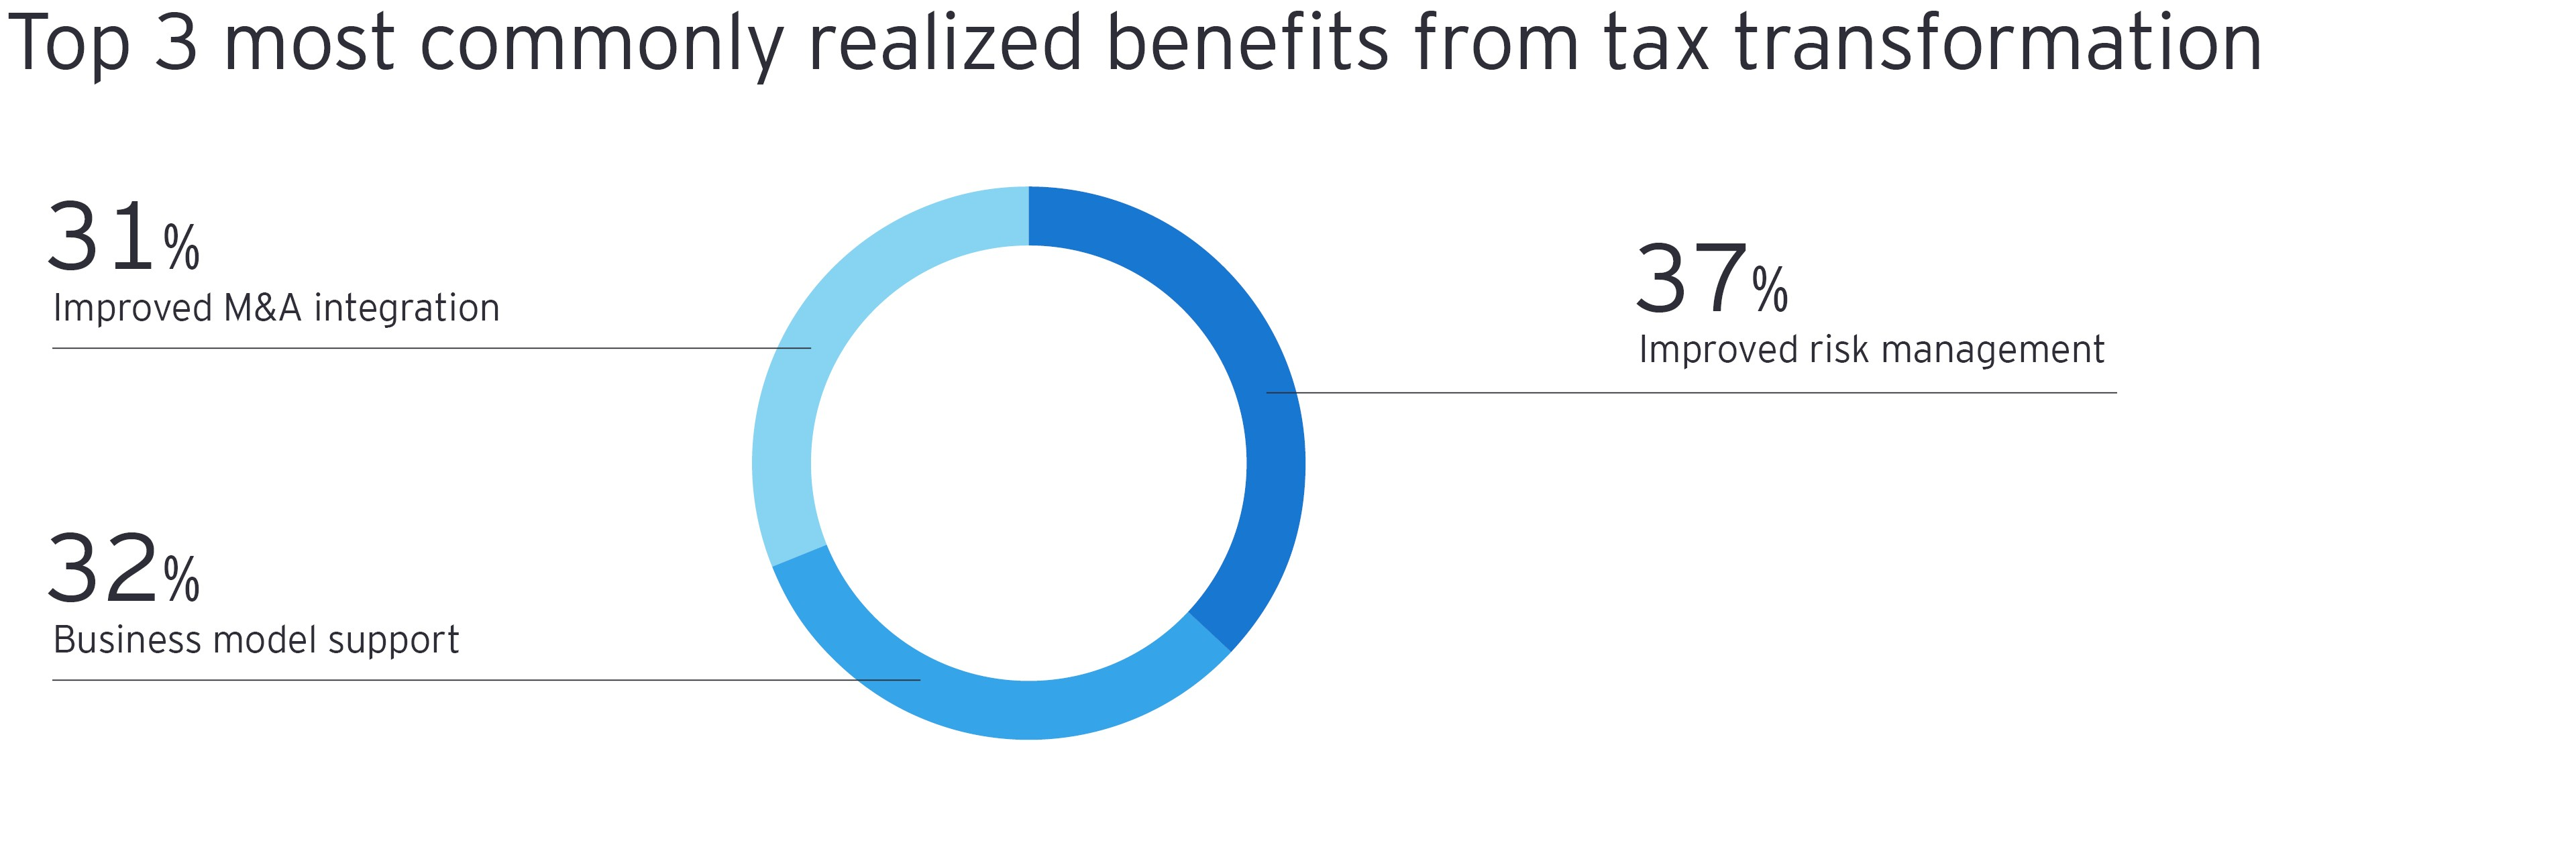 Top 3 most commonly realized benefits from tax transformation